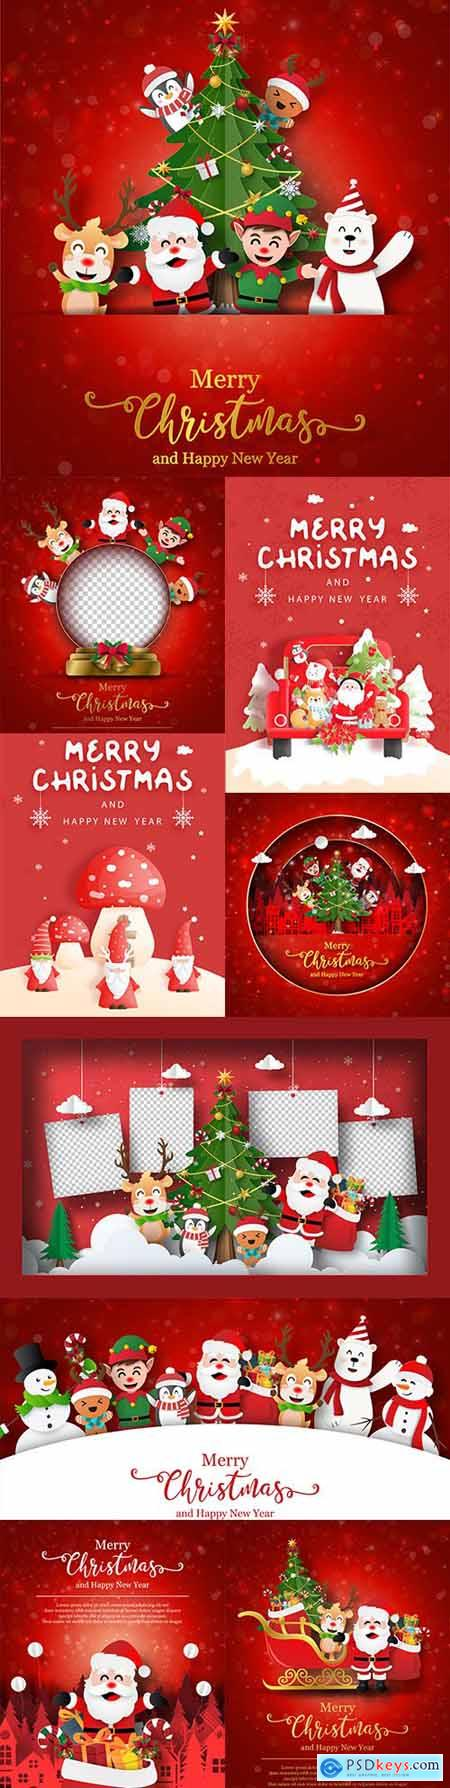 Santa Claus Christmas card and friends with gifts